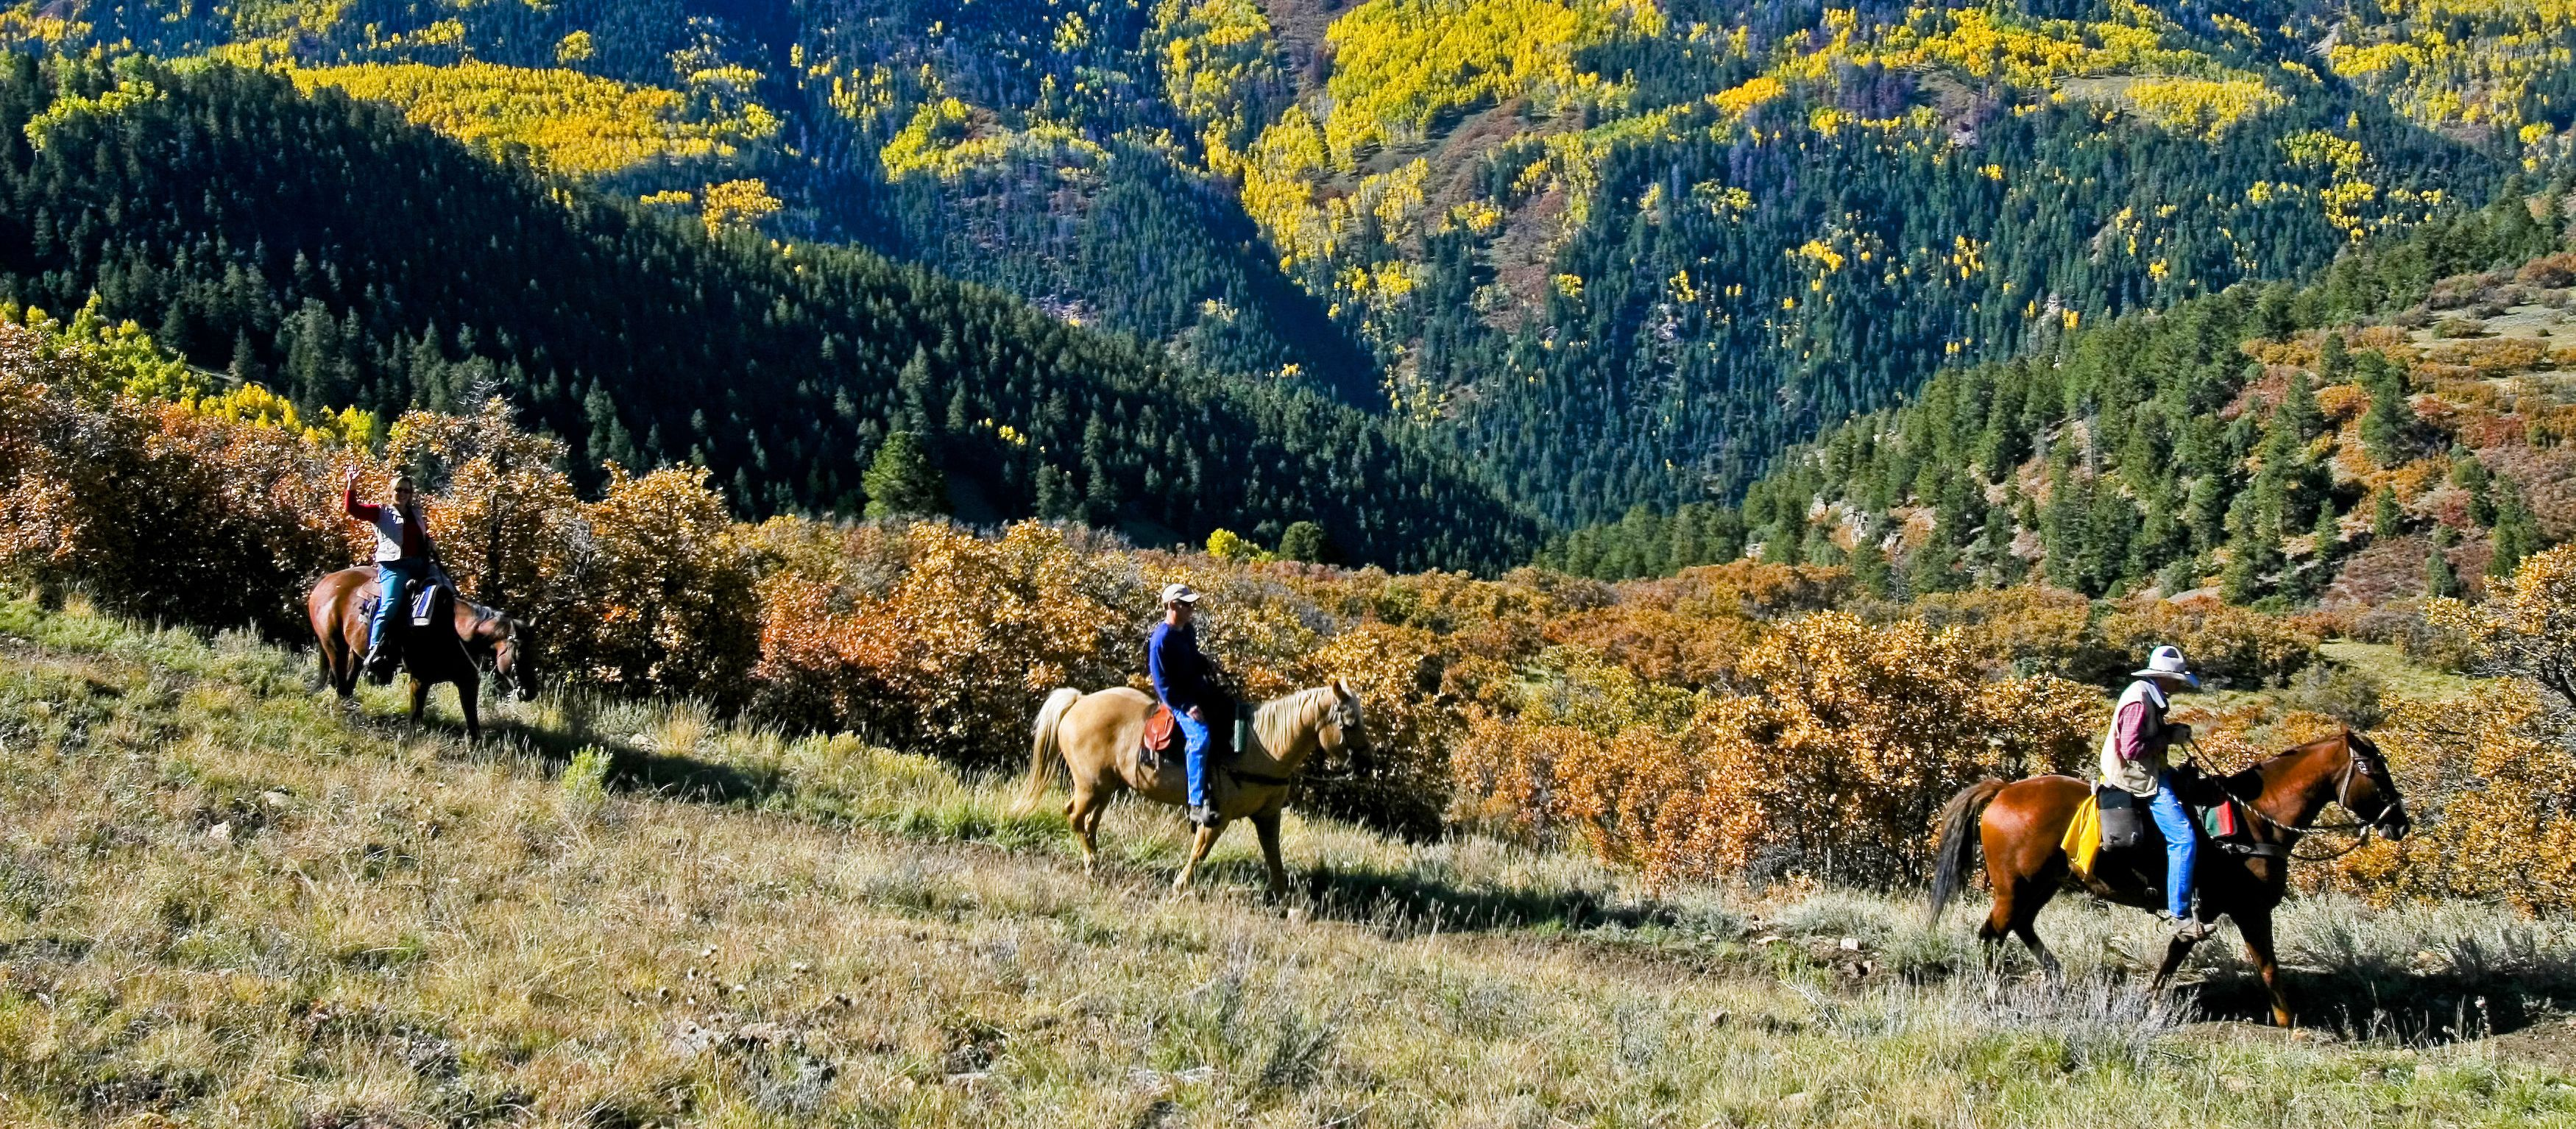 Reiten in Aspen, Colorado